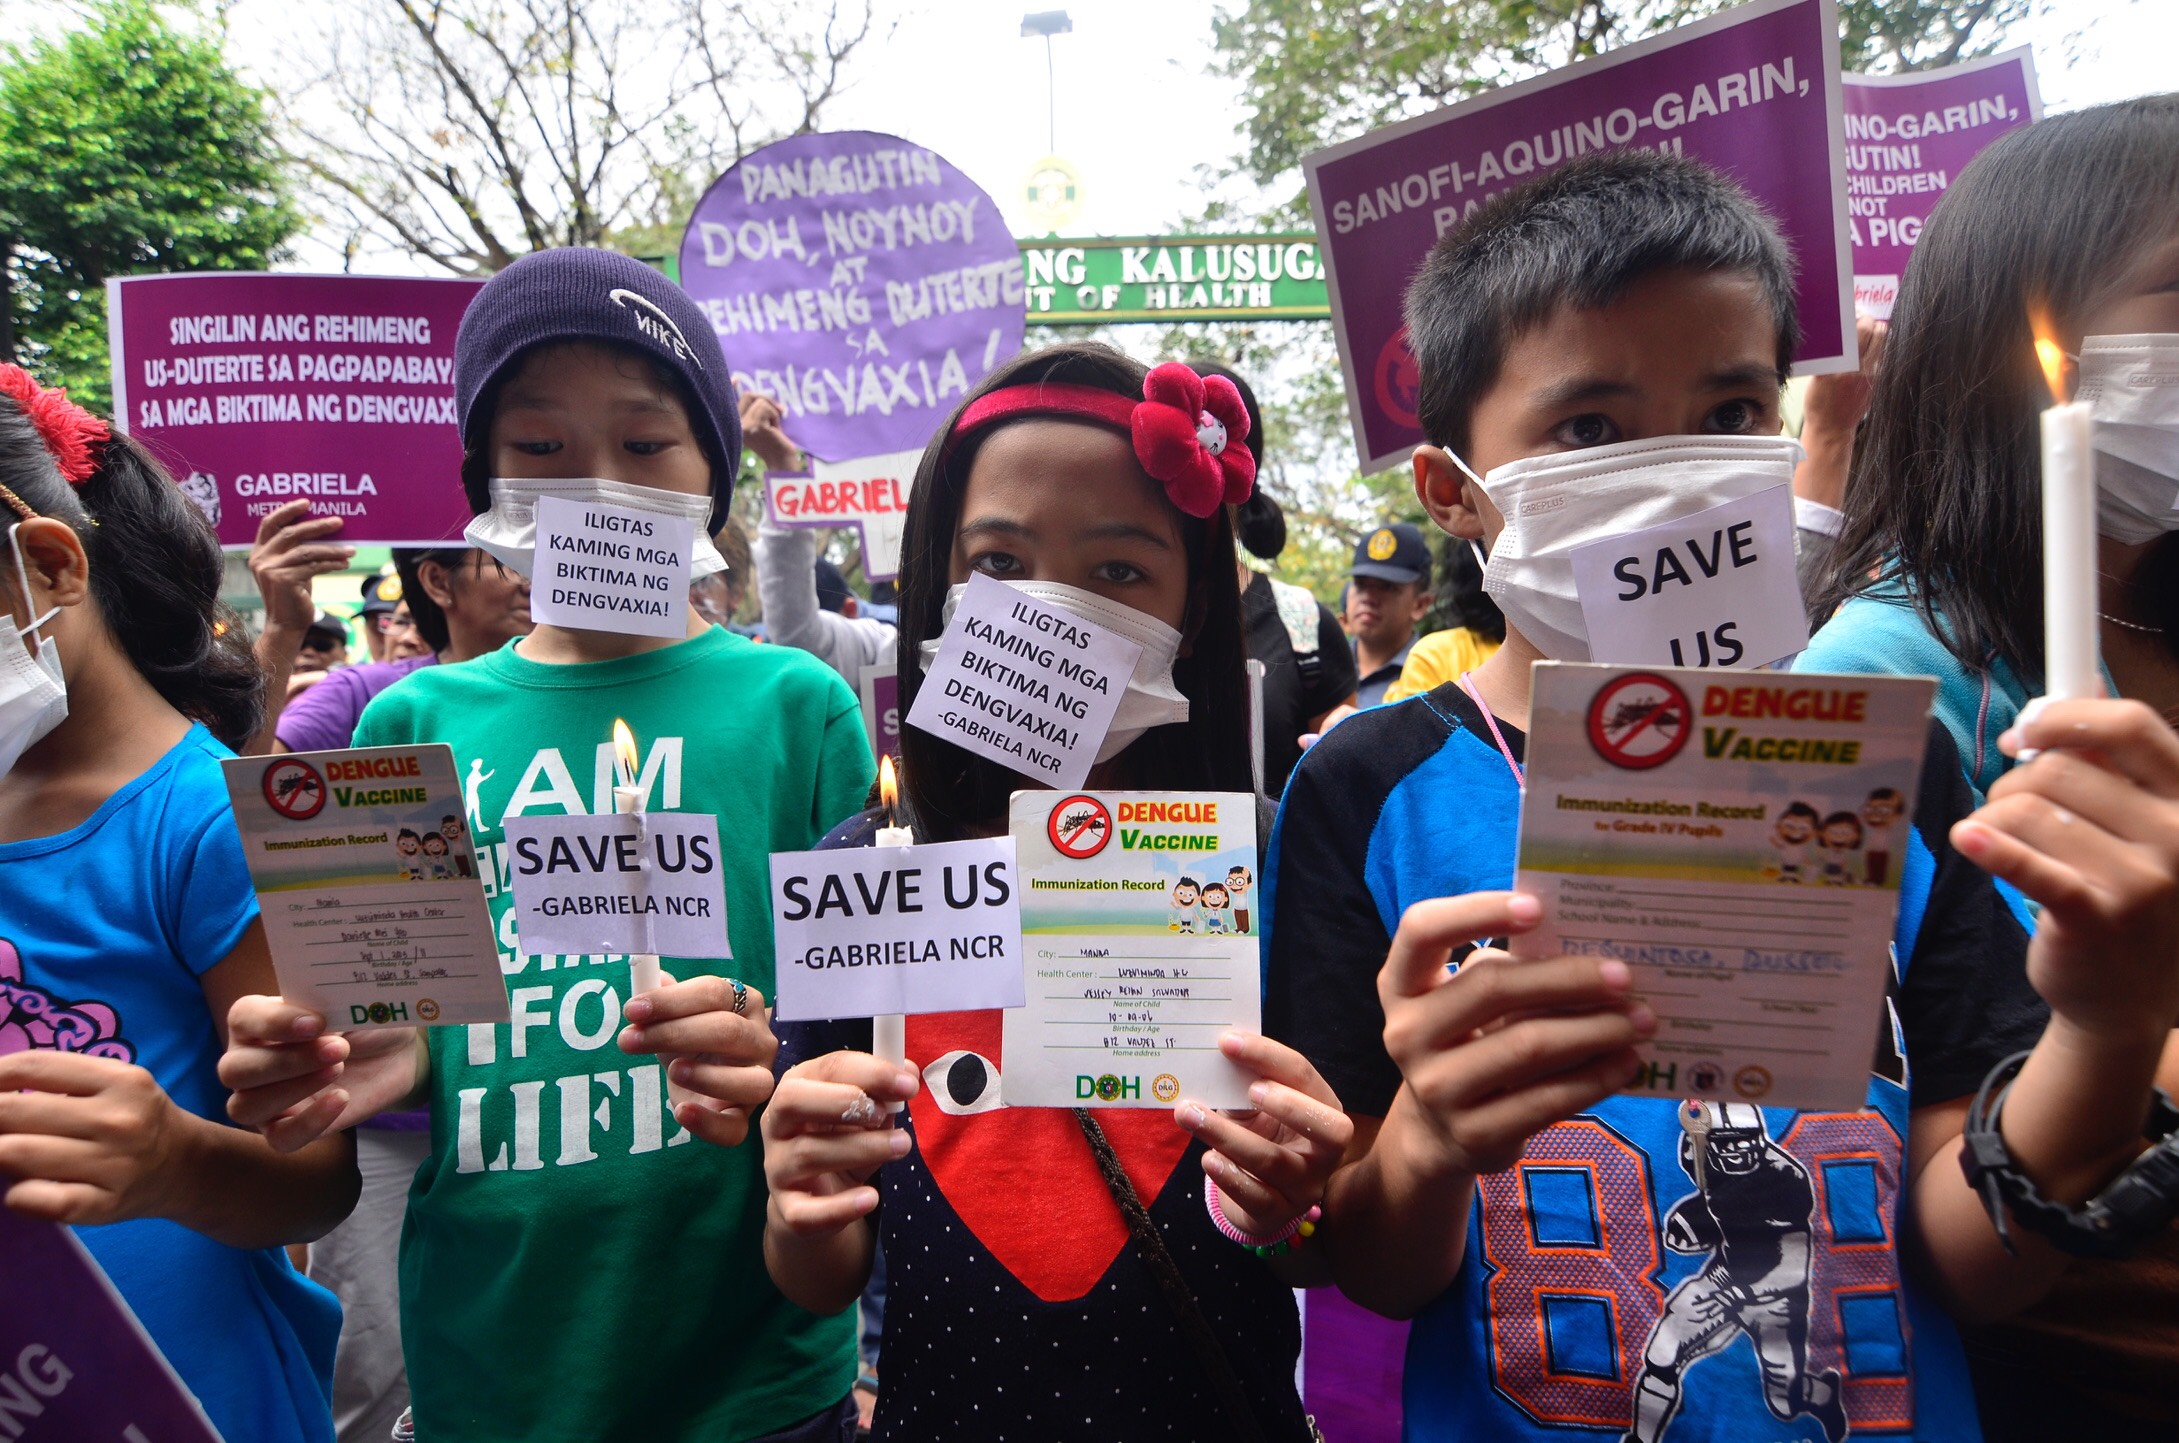 PROTESTS. Children vaccinated with Dengvaxia join their parents and activists in a protest at the DOH on February 7, 2018. Photo by Maria Tan/Rappler